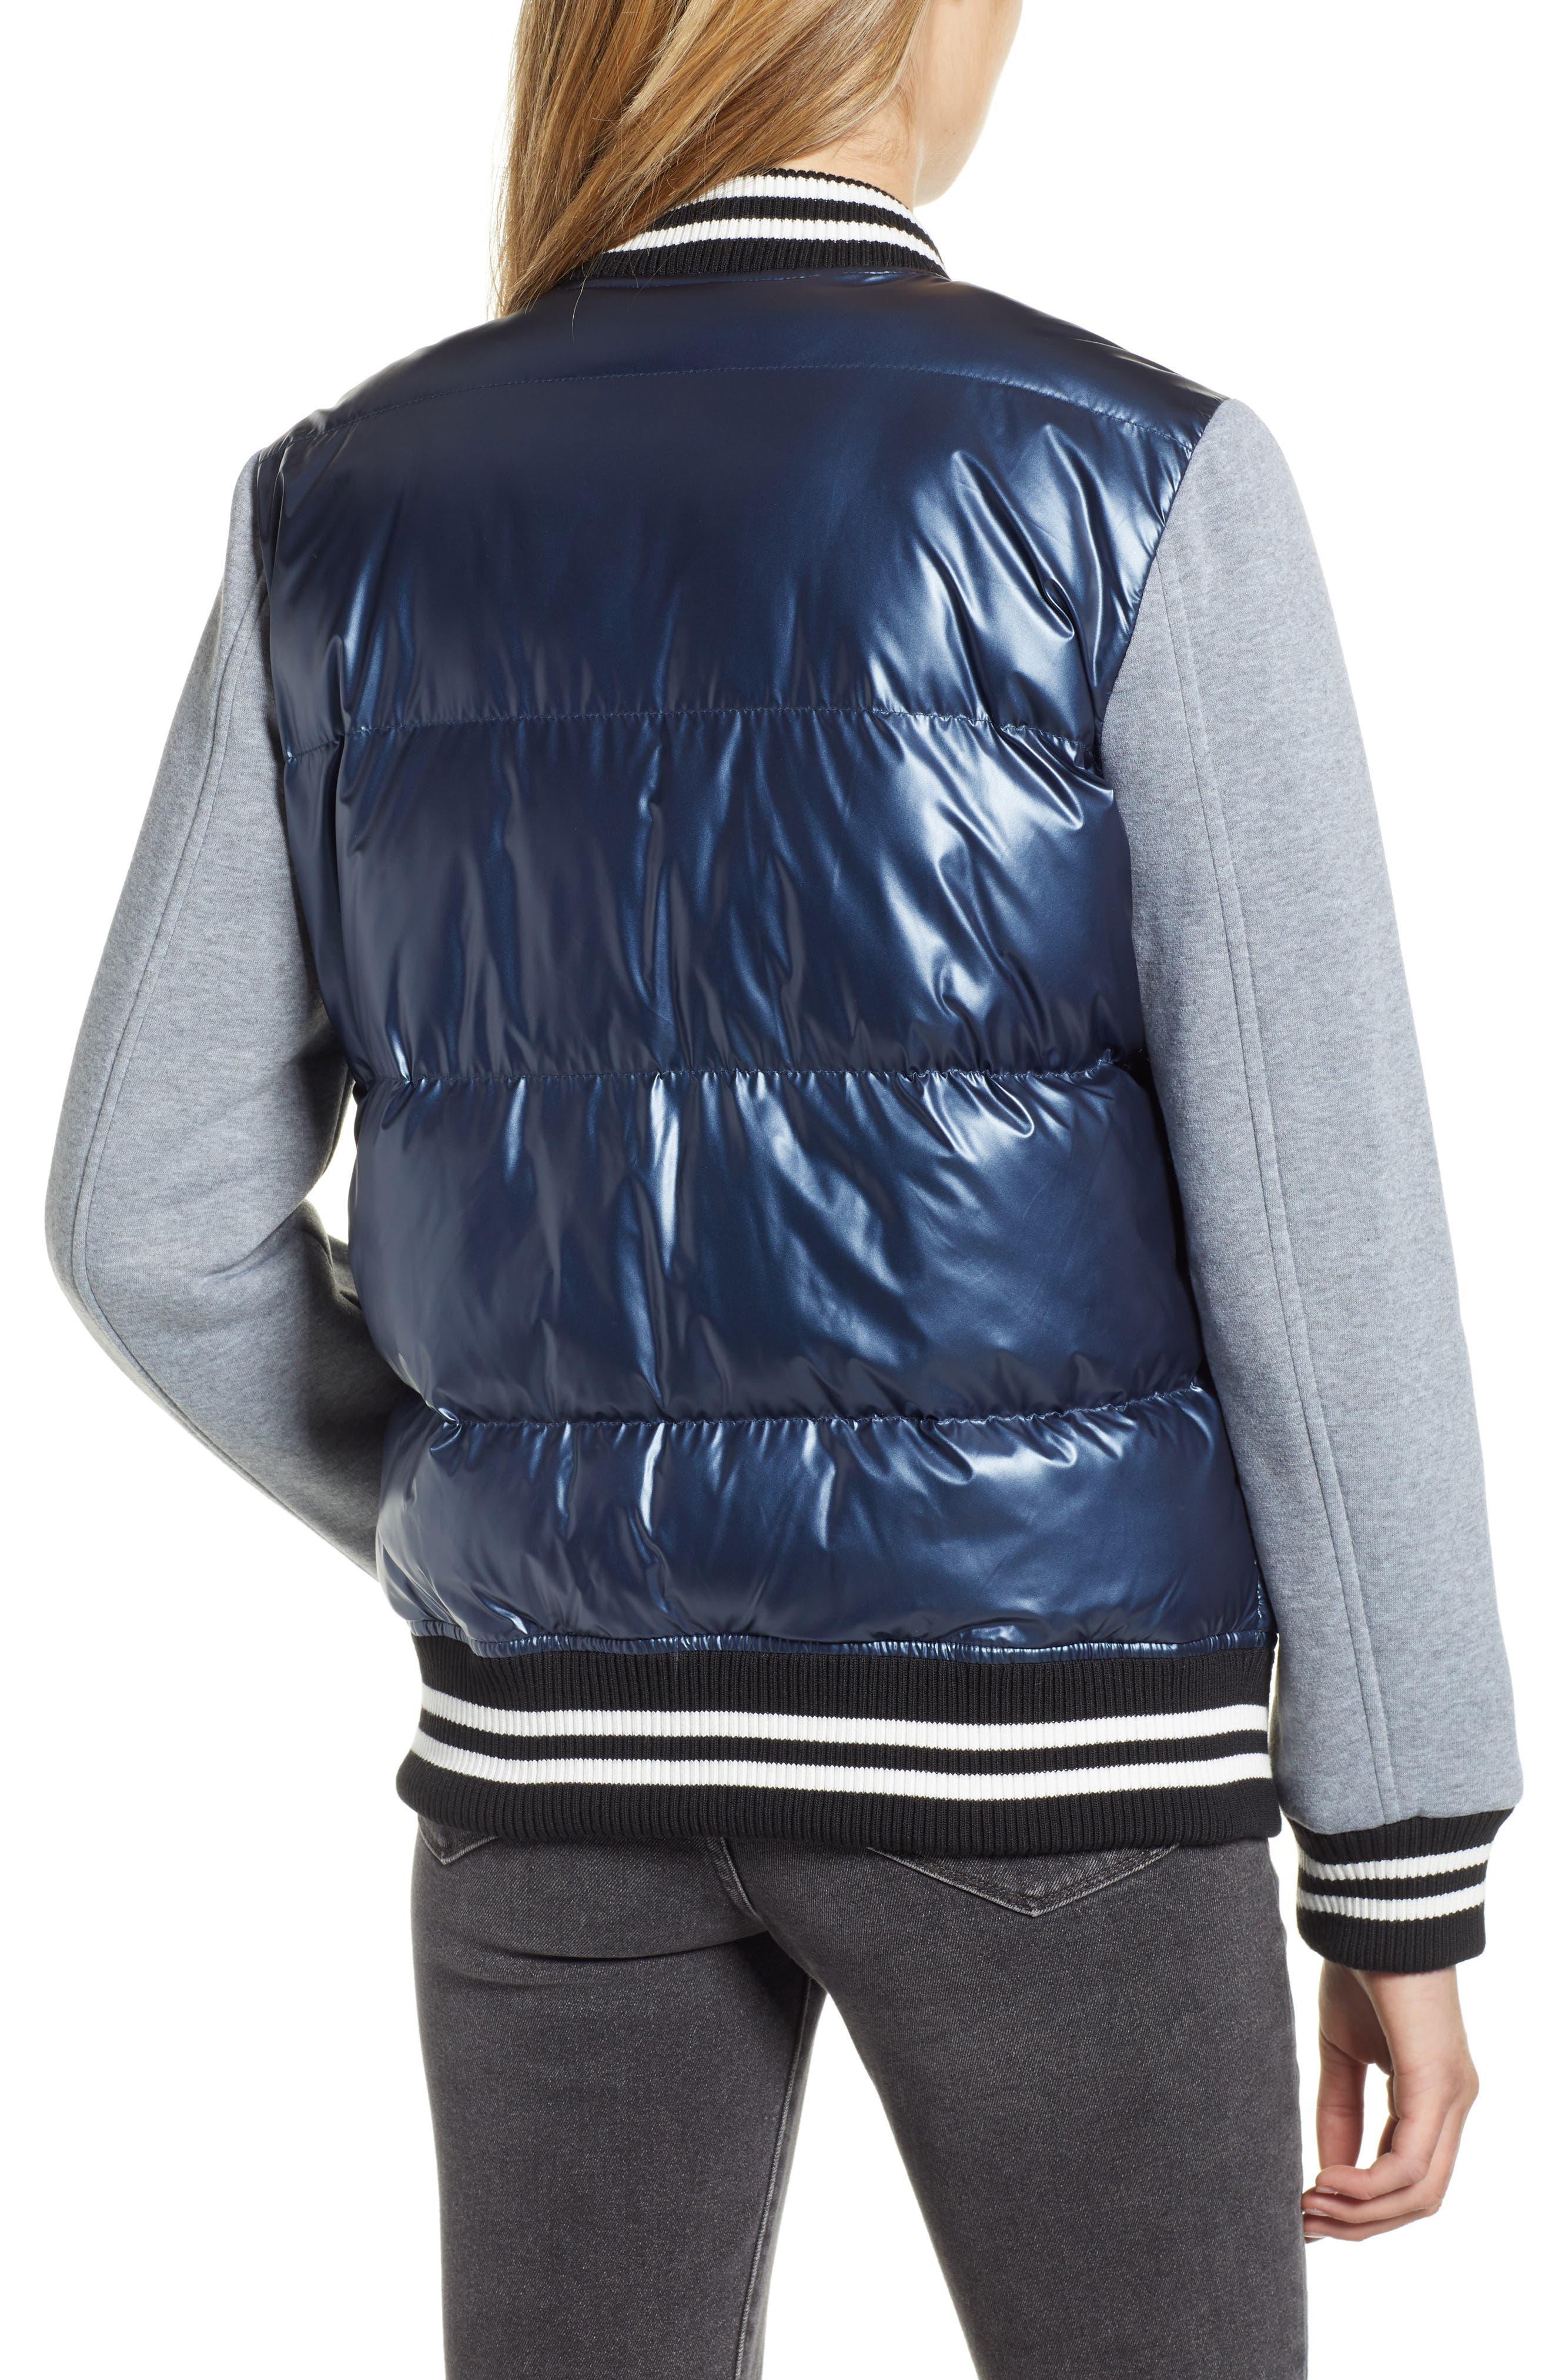 LEVIS<sup>®</sup> Mixed Media Quilted Varsity Jacket,                             Alternate thumbnail 2, color,                             NAVY/ GREY